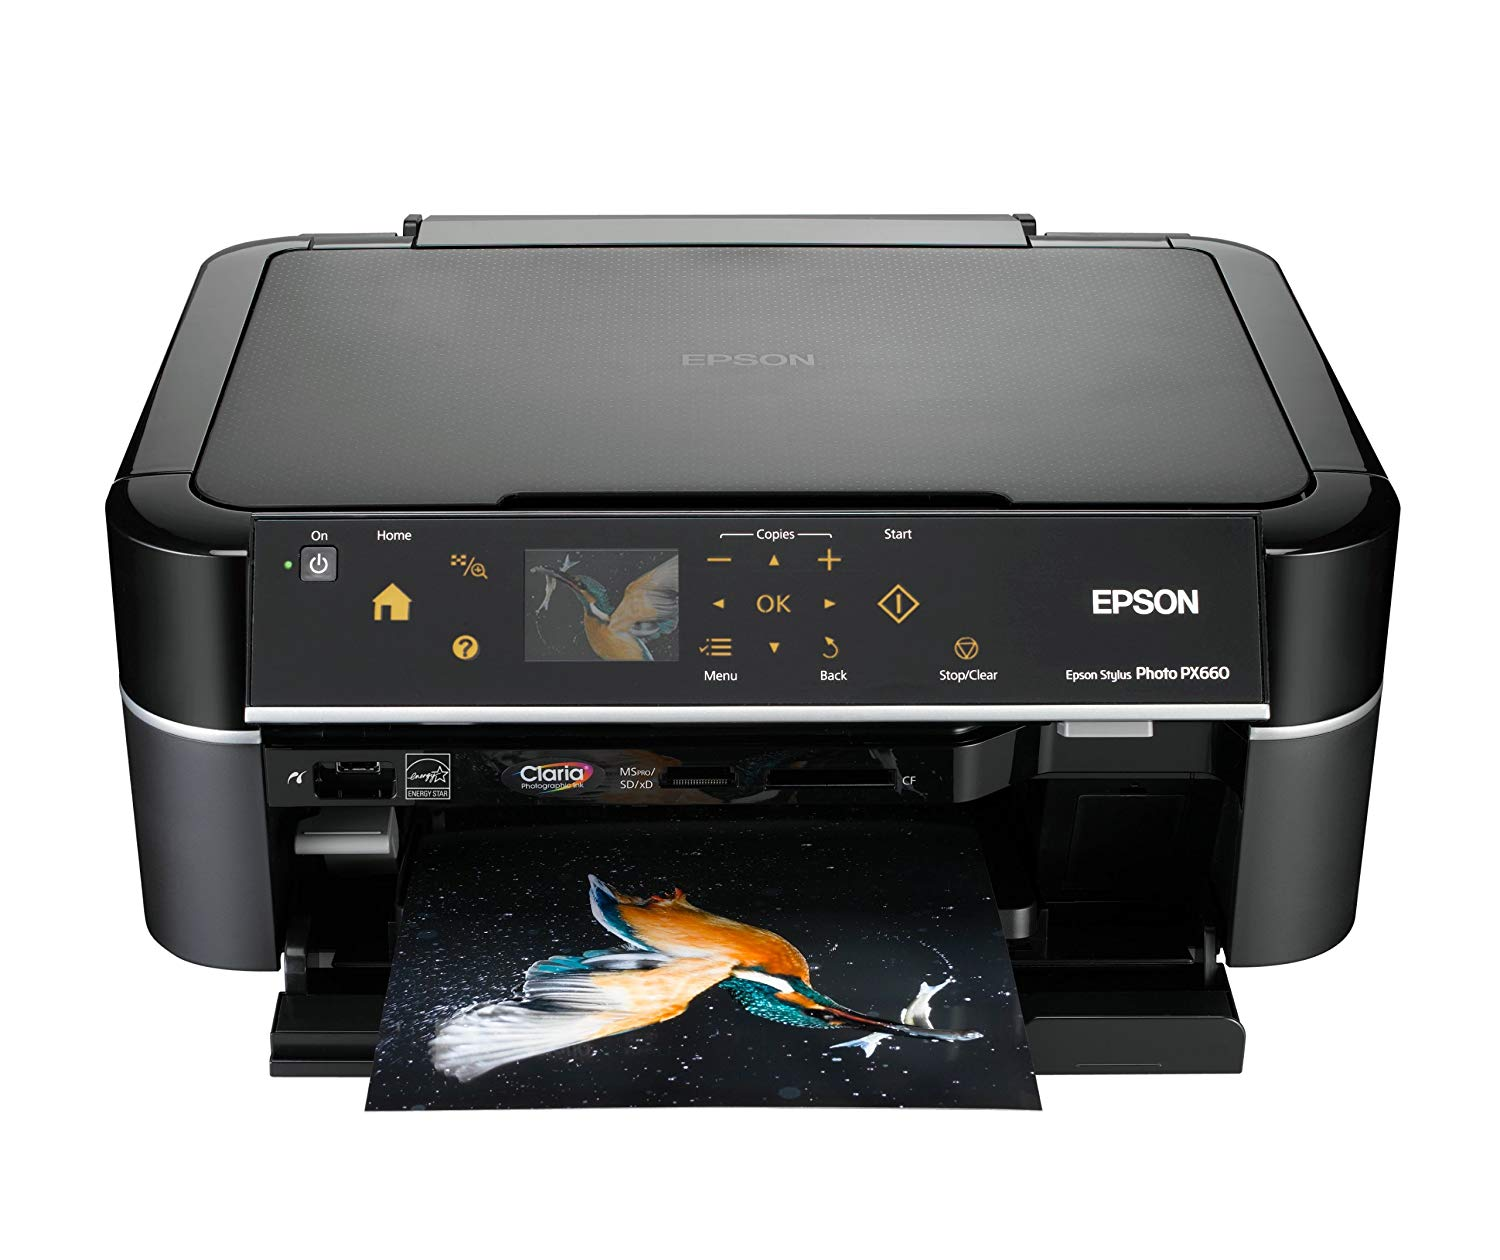 EPSON STYLUS PHOTO RX680 ICA SCANNER WINDOWS 8 X64 DRIVER